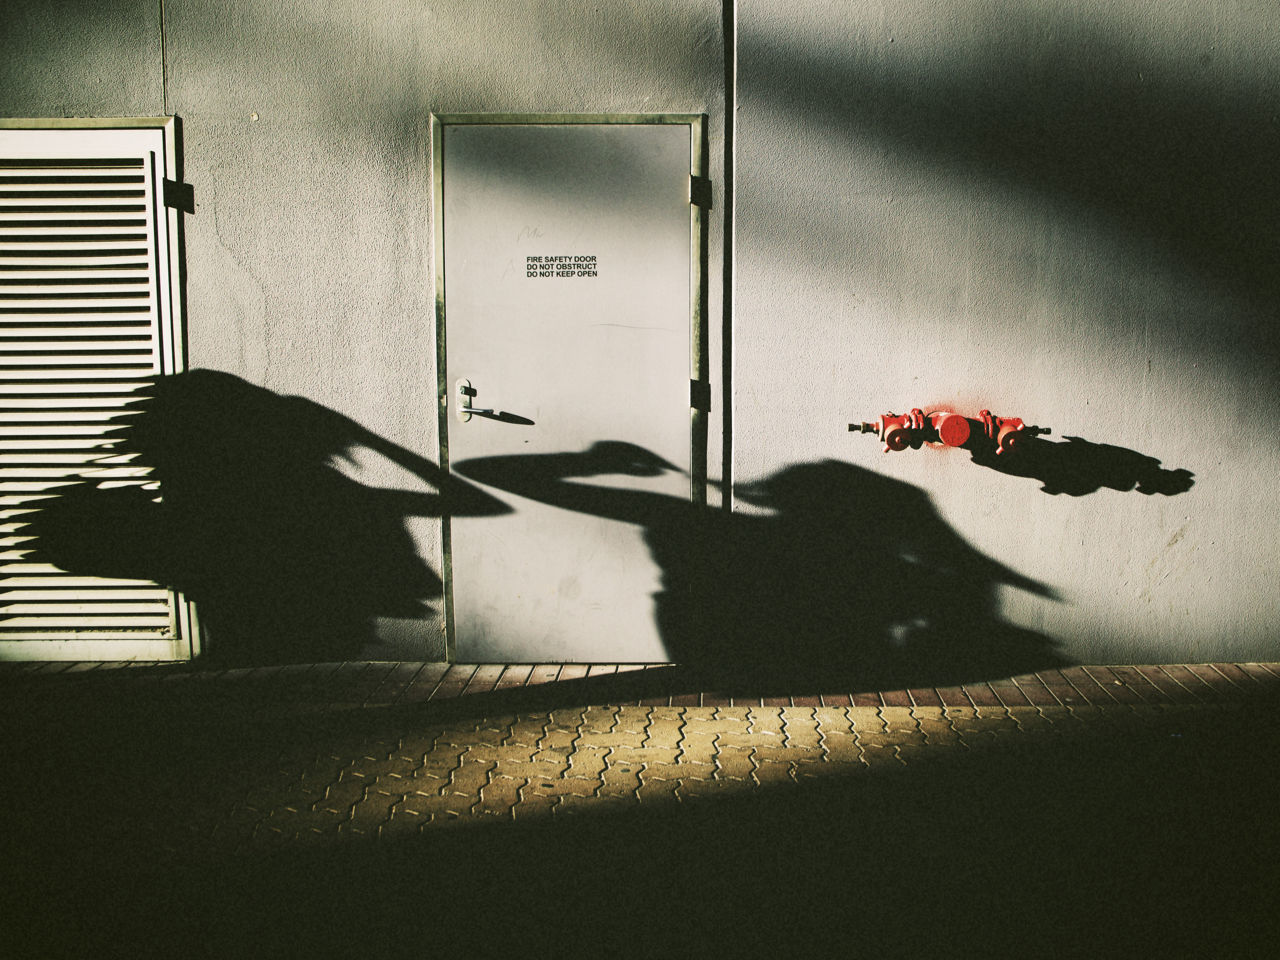 Shadow of two people against building exterior